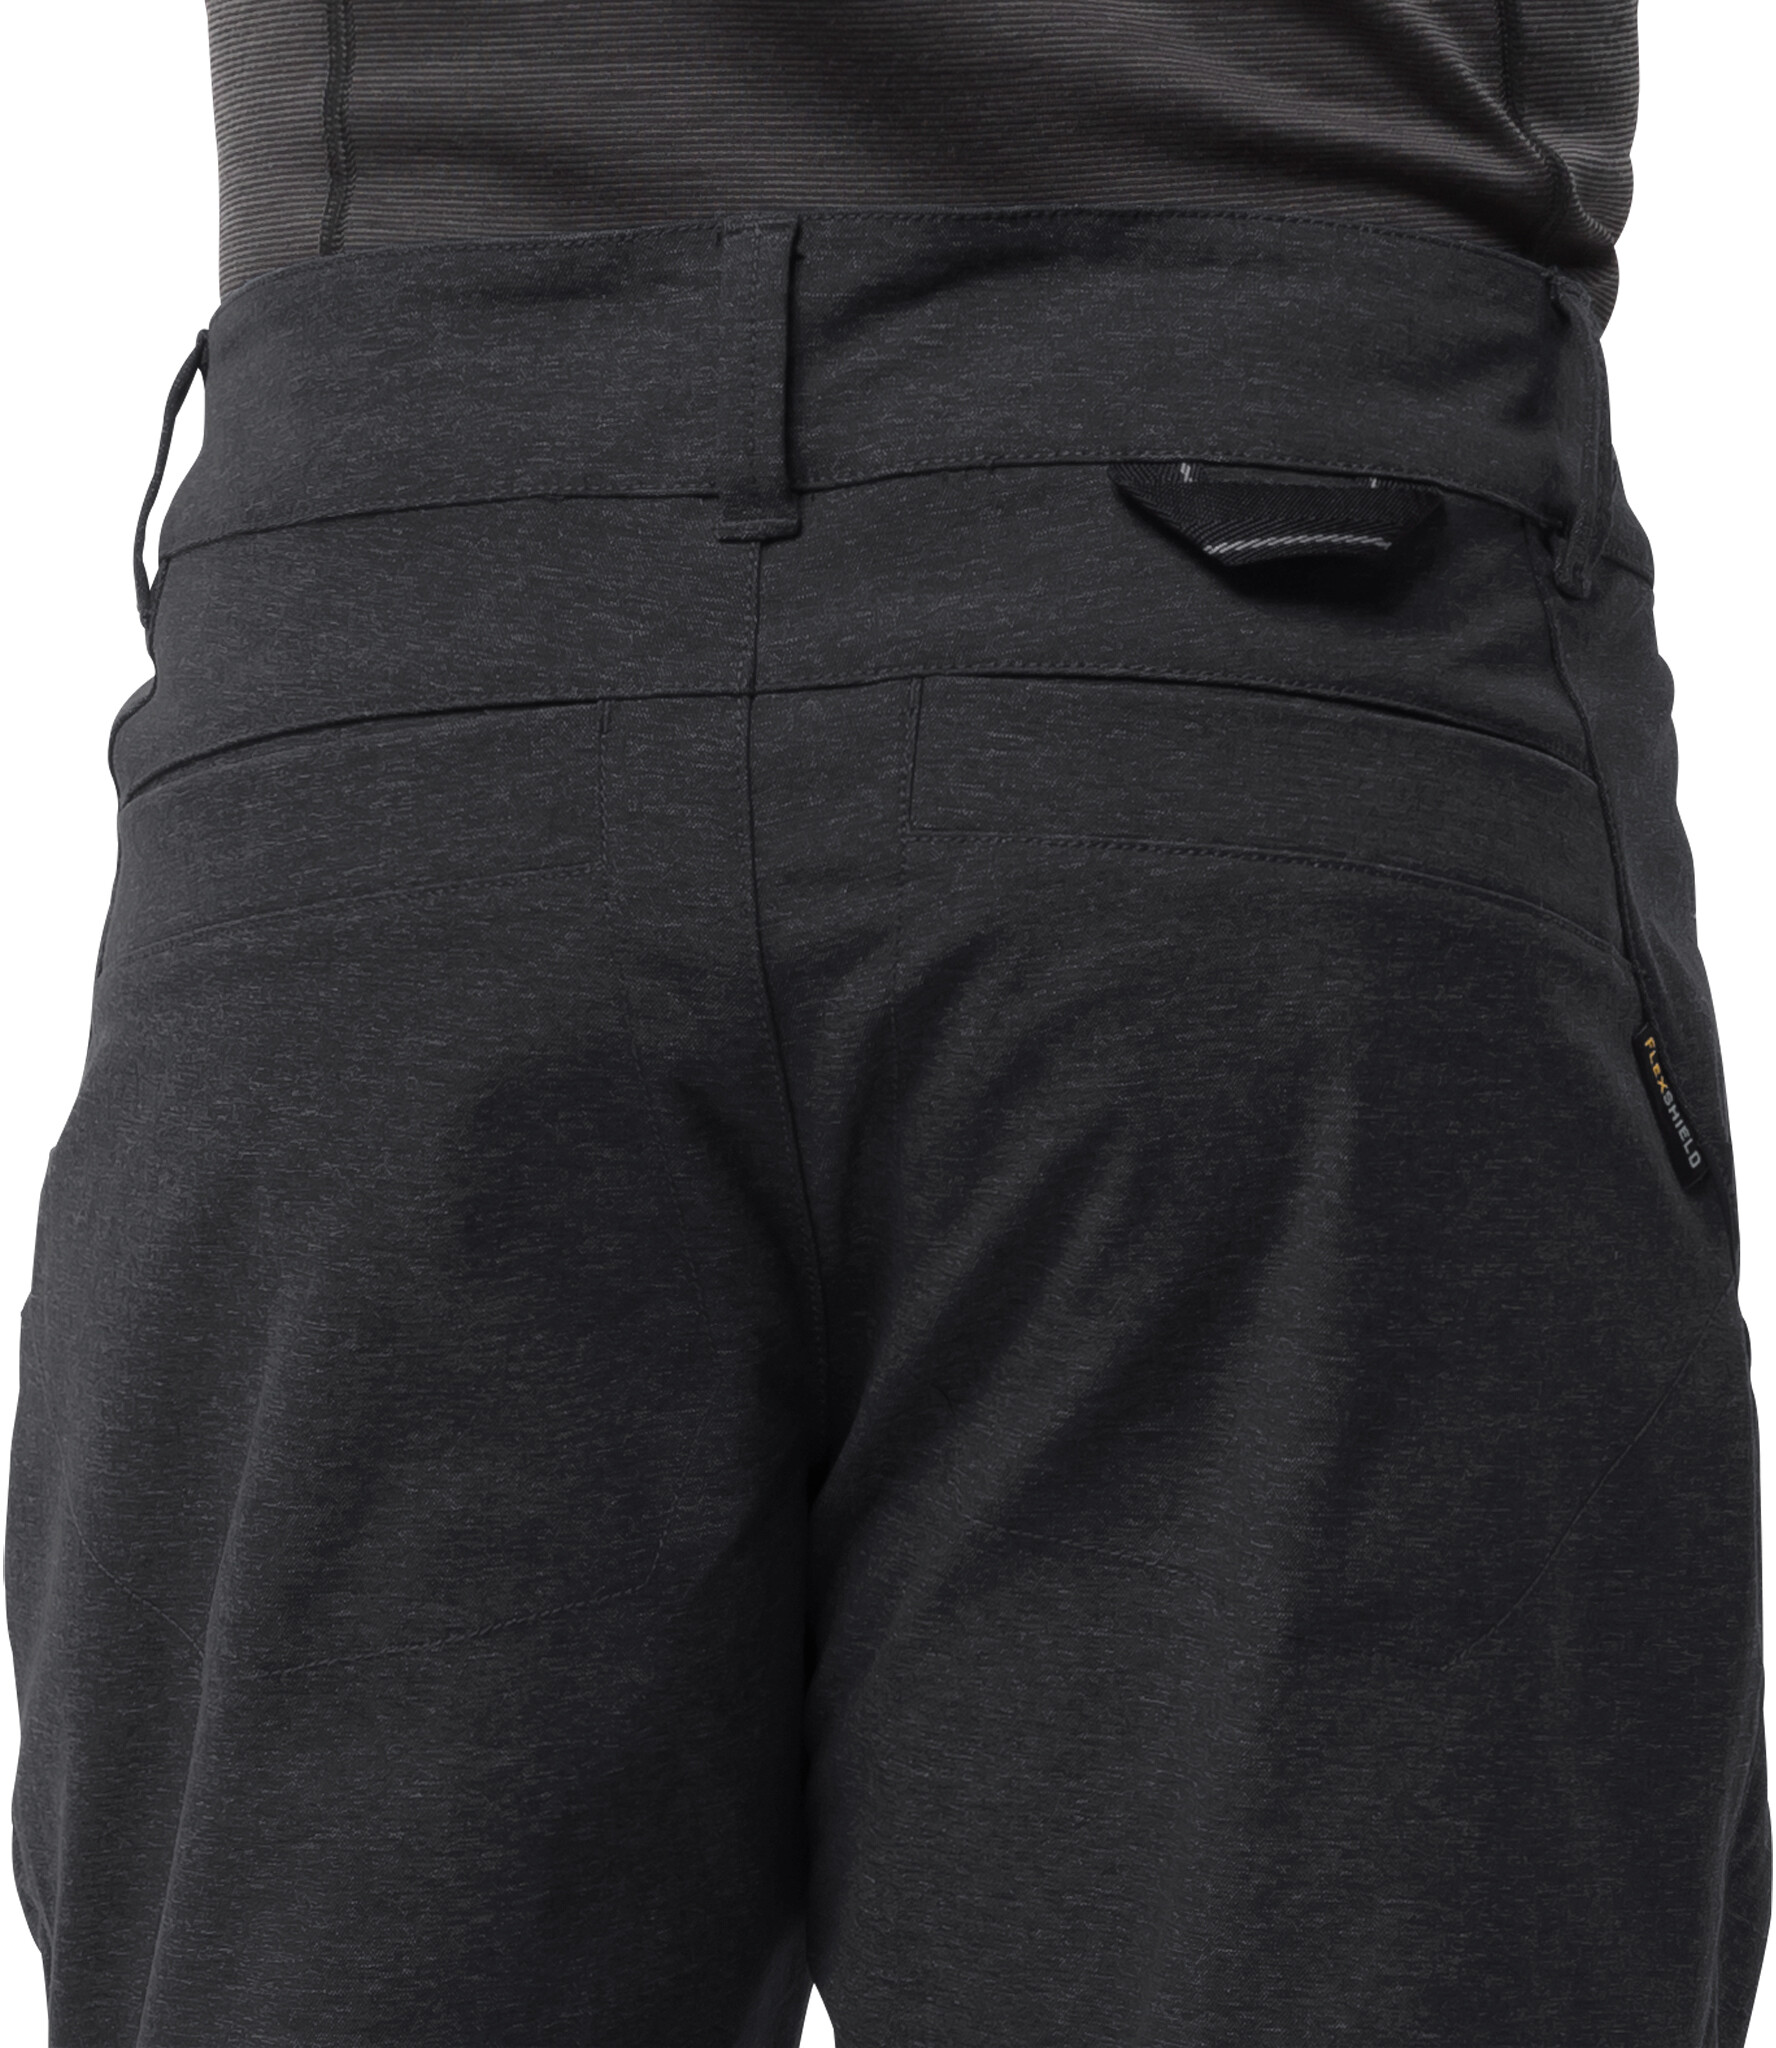 b6dadd45ac0d Jack Wolfskin Winter Travel Pants Men black at Addnature.co.uk